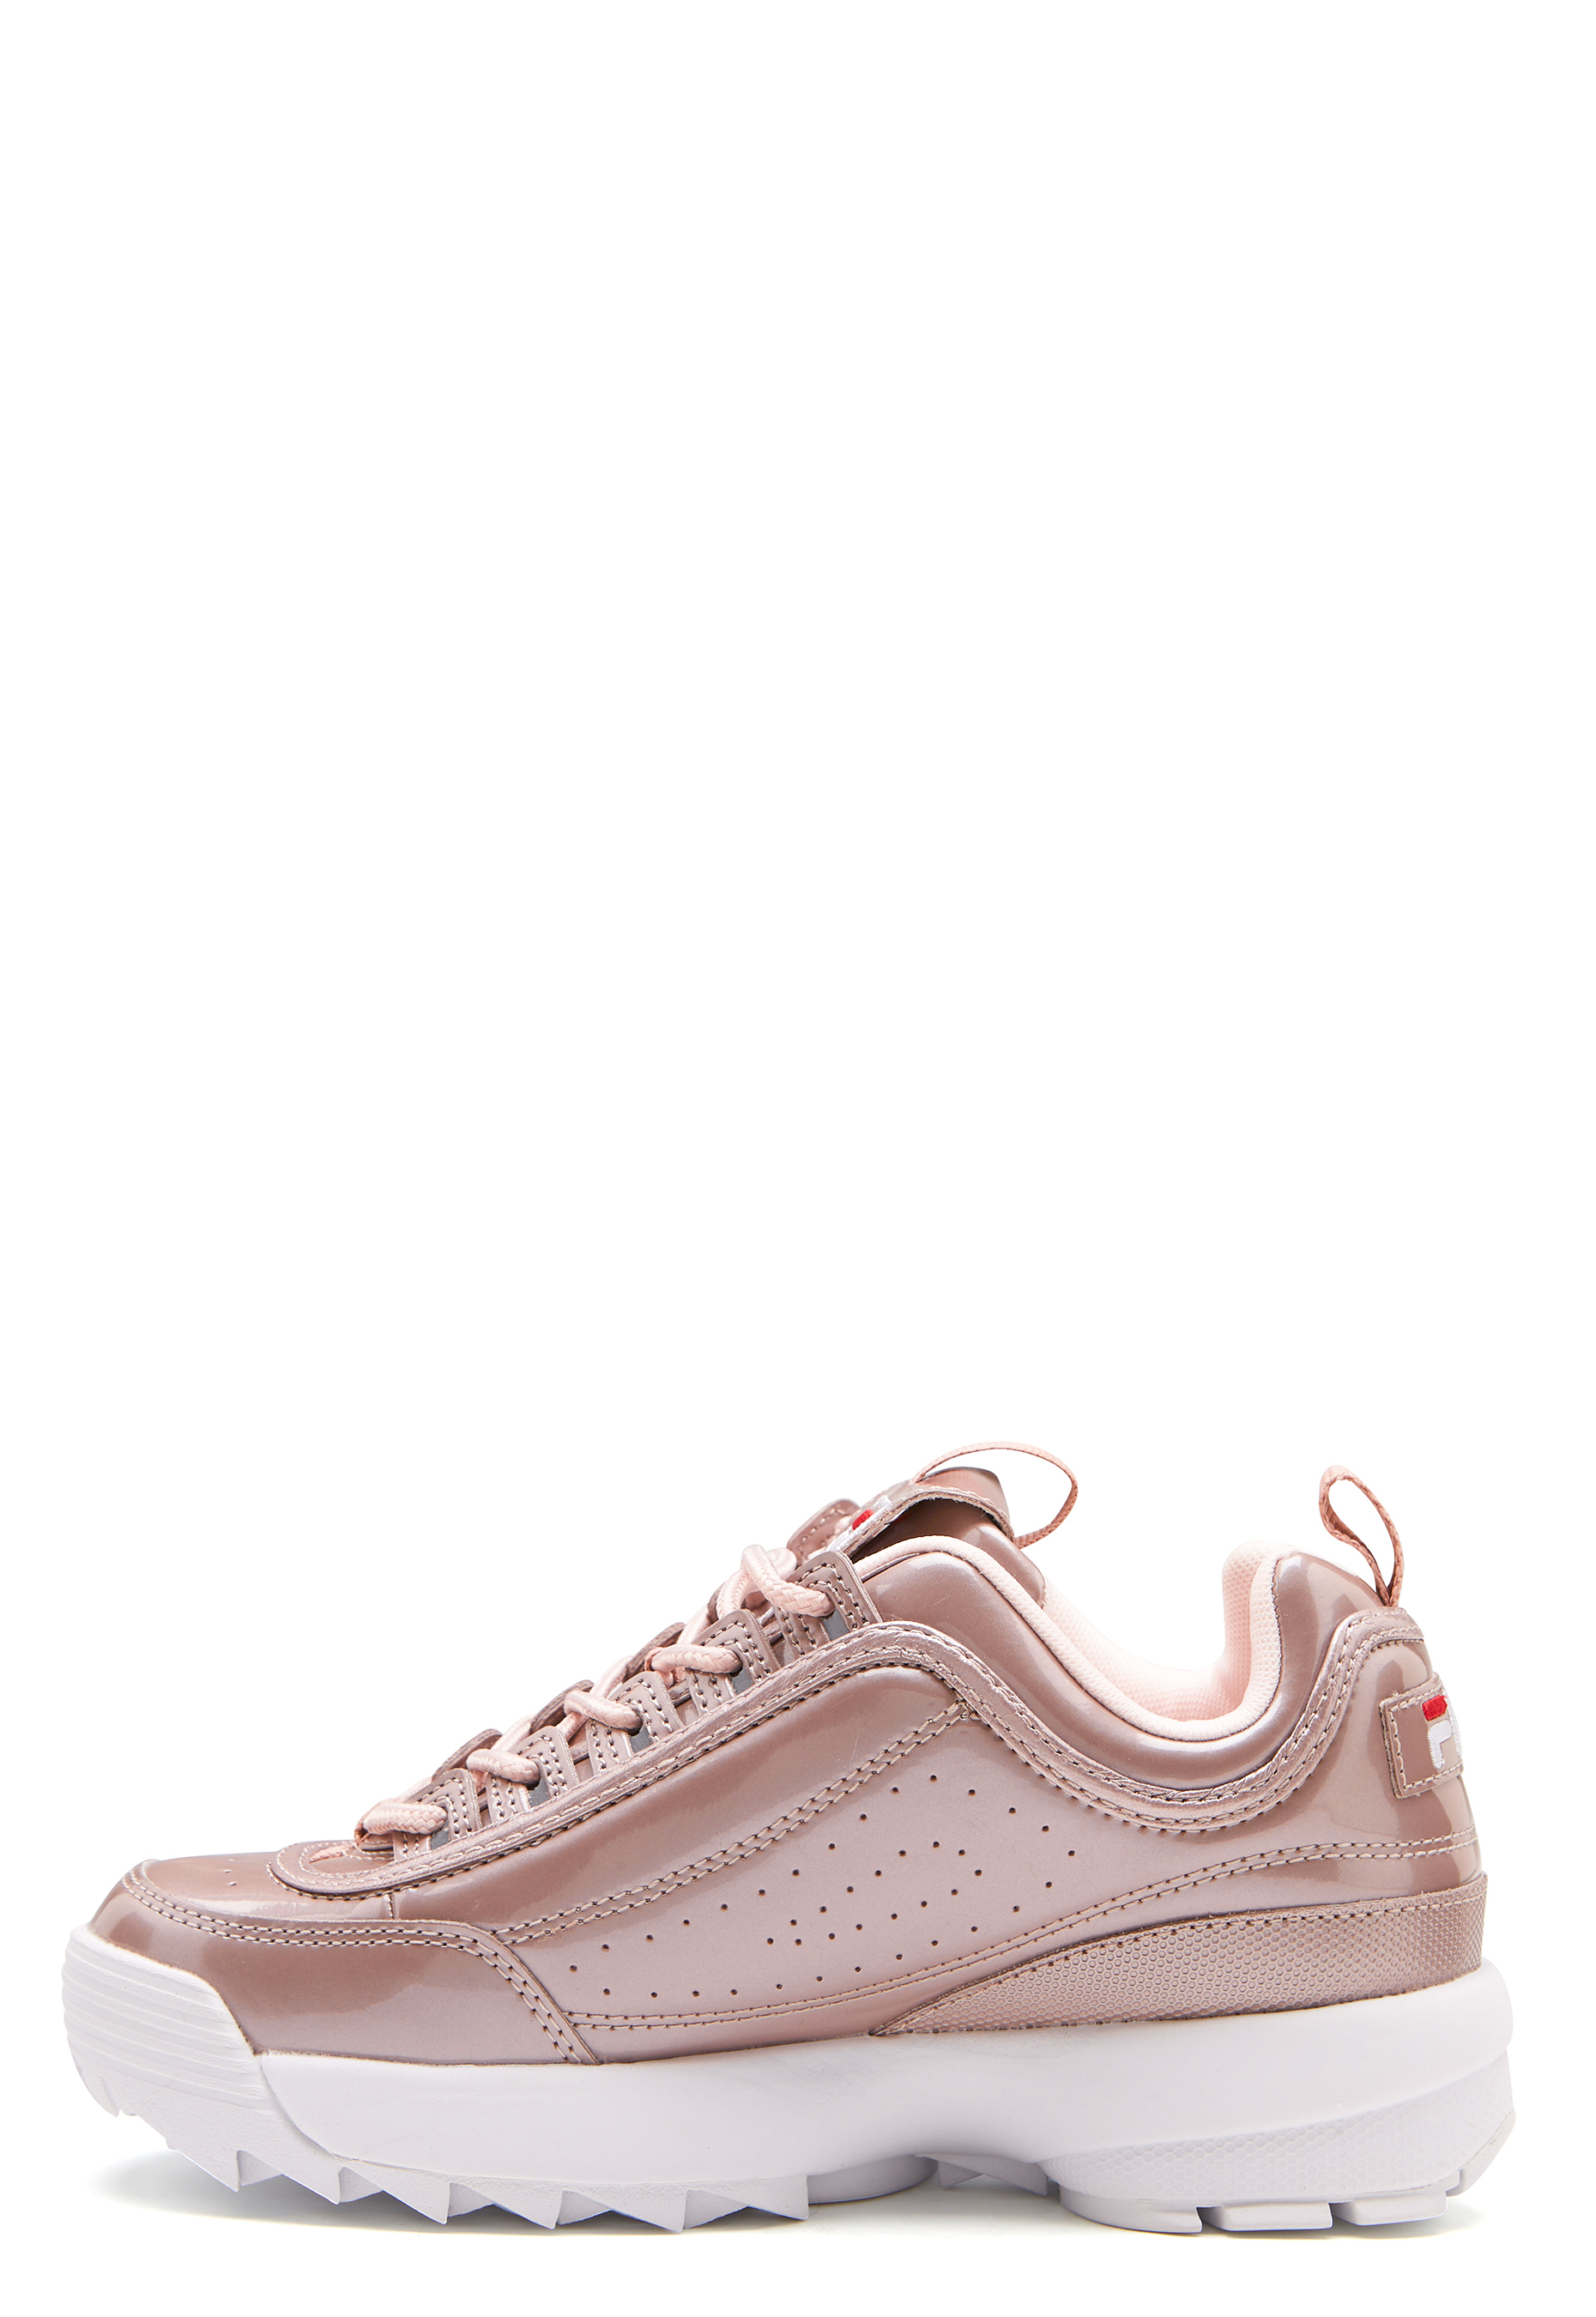 FILA Disruptor M Low Rose Smoke Bubbleroom